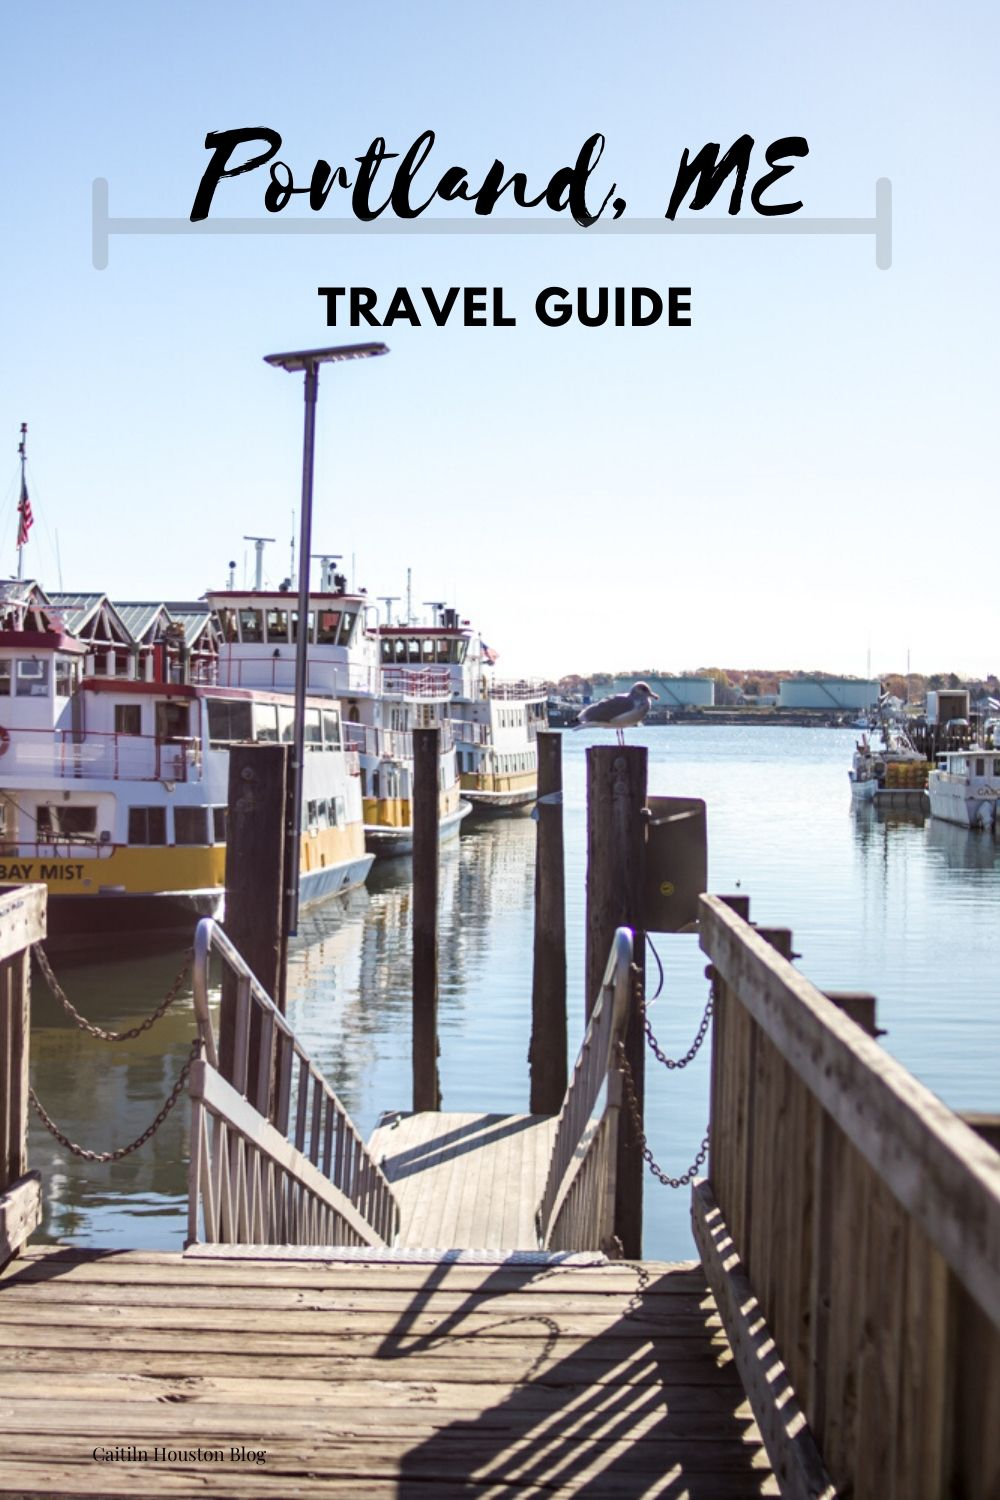 Portland Maine Travel Guide at the Habor